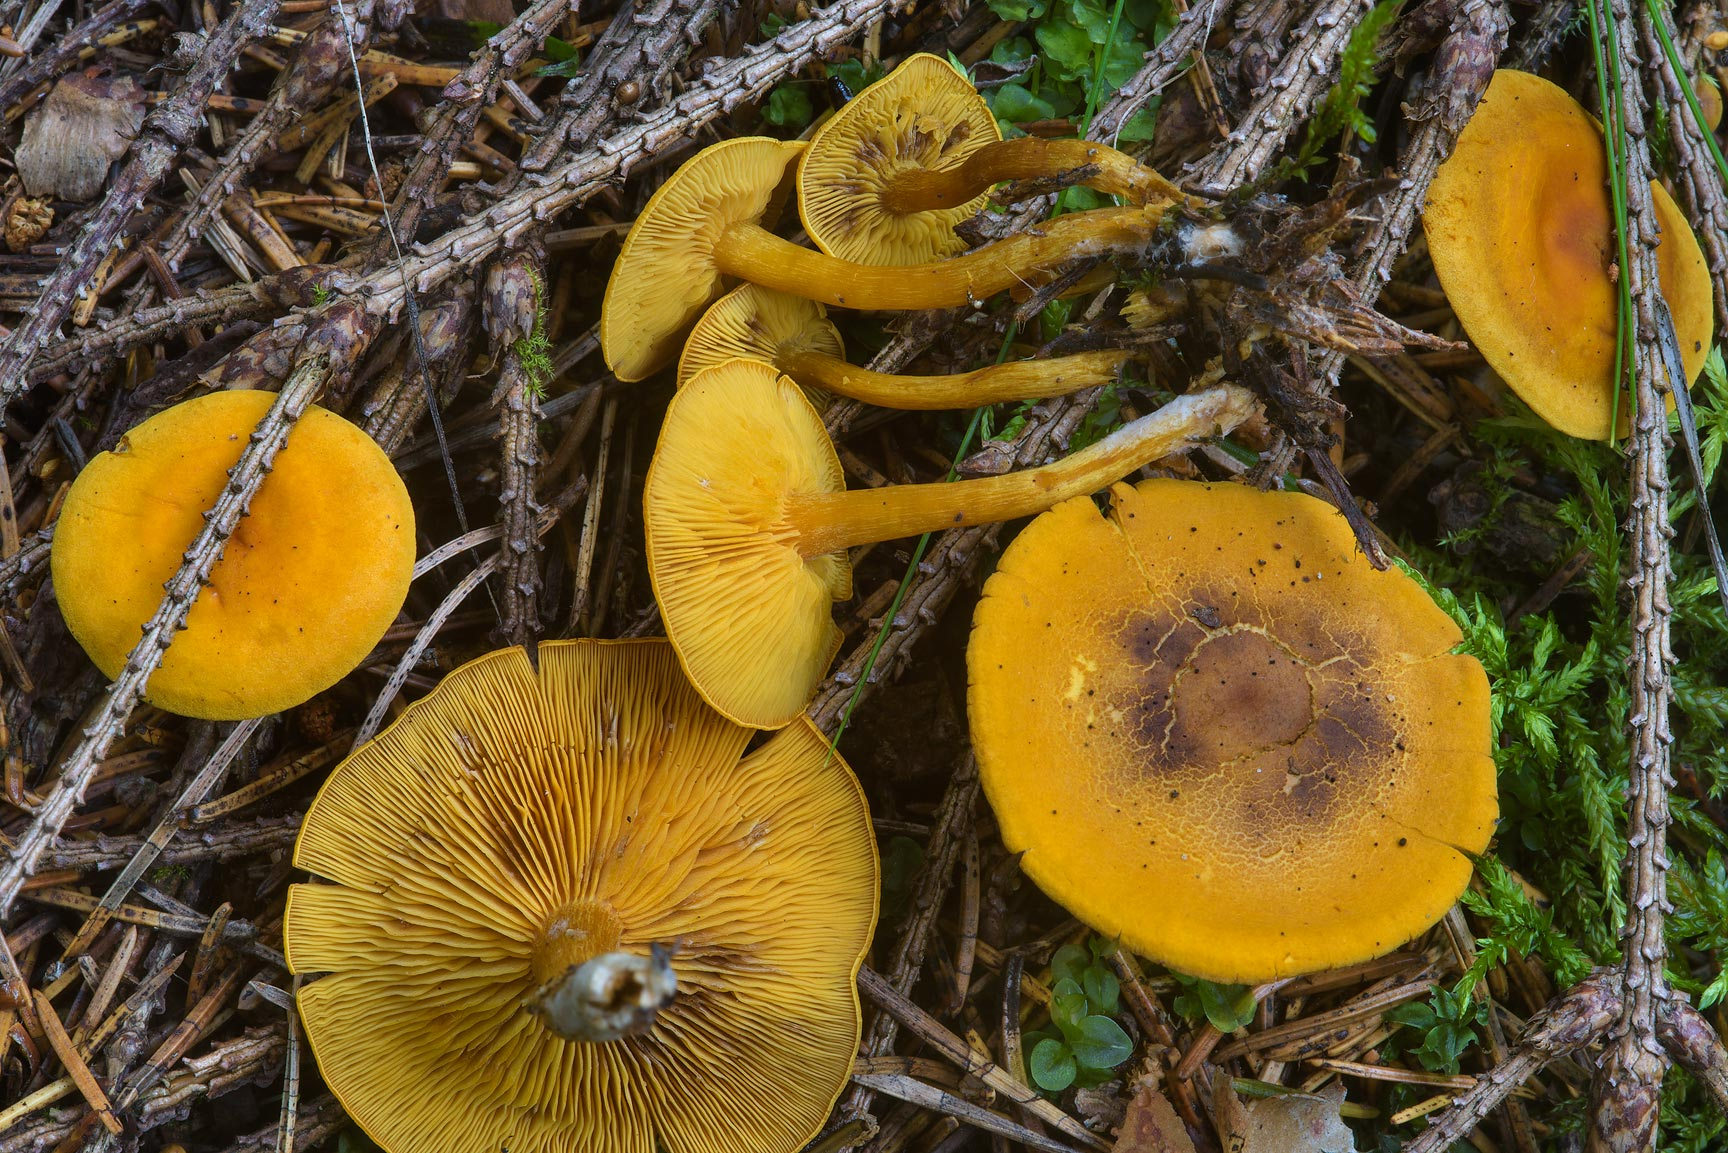 Some orange mushrooms (Gymnopilus sp.) in Dibuny, north-west from St.Petersburg, Russia